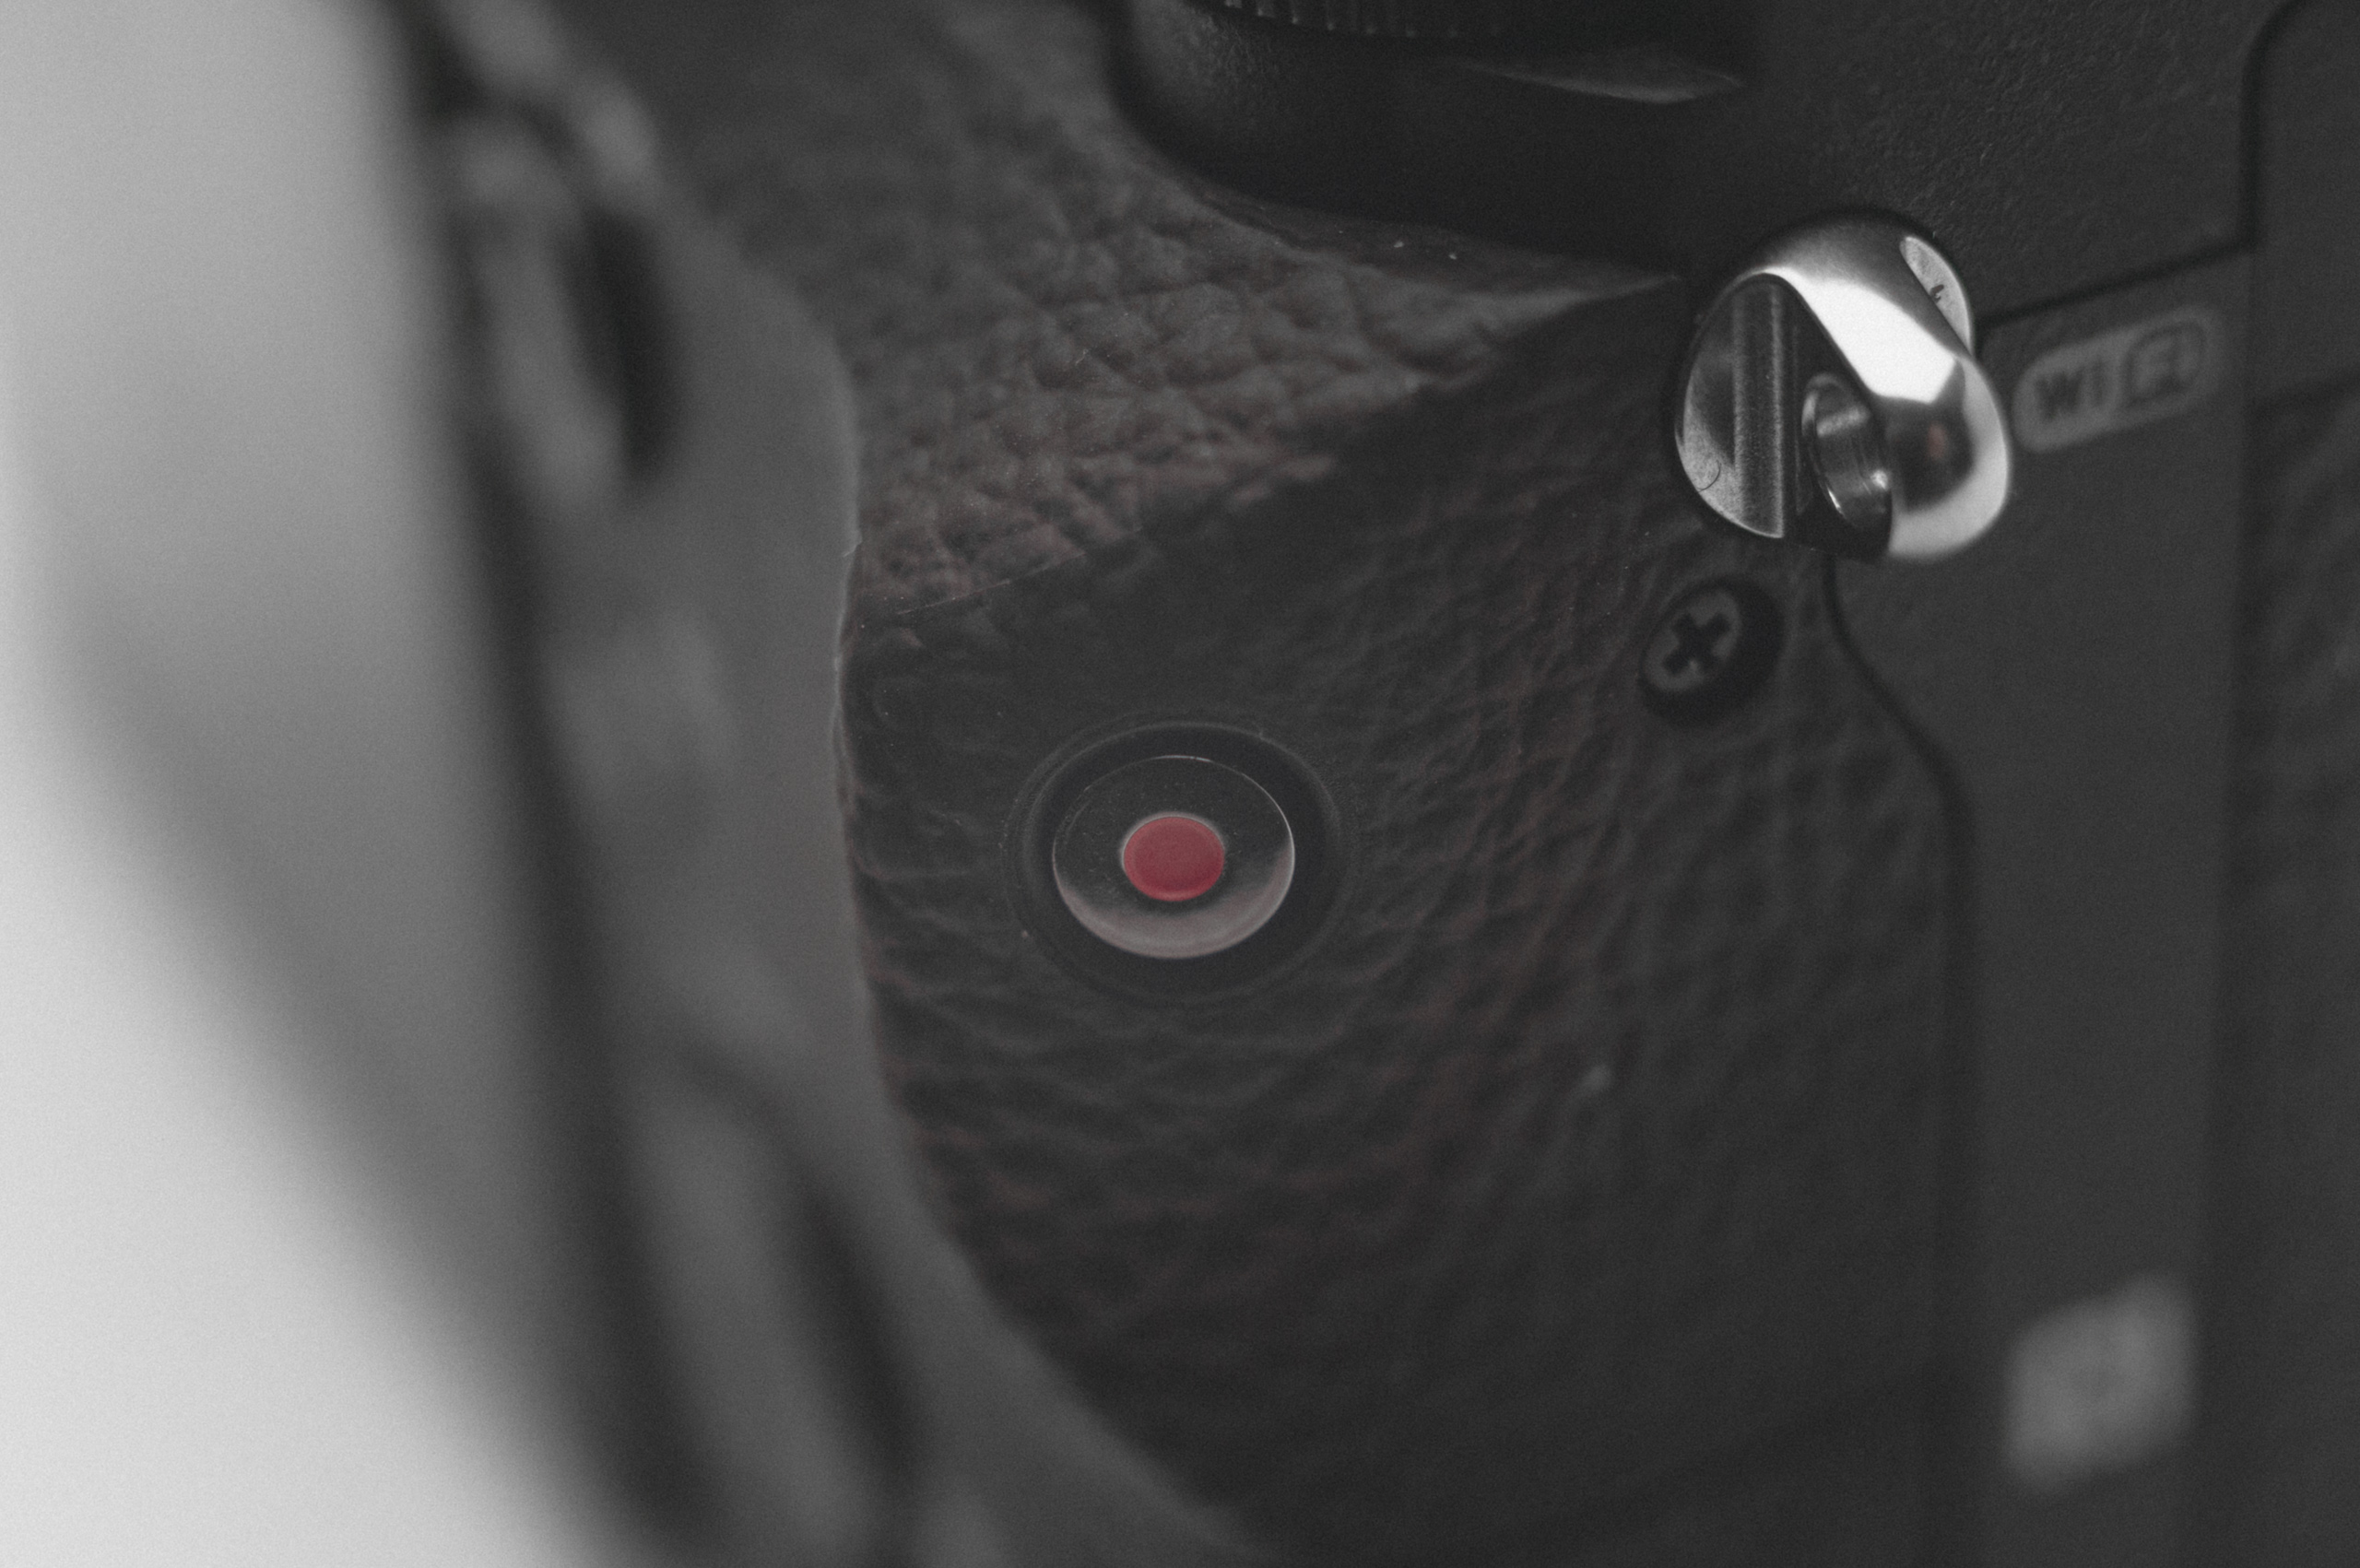 SONY A7RII record button